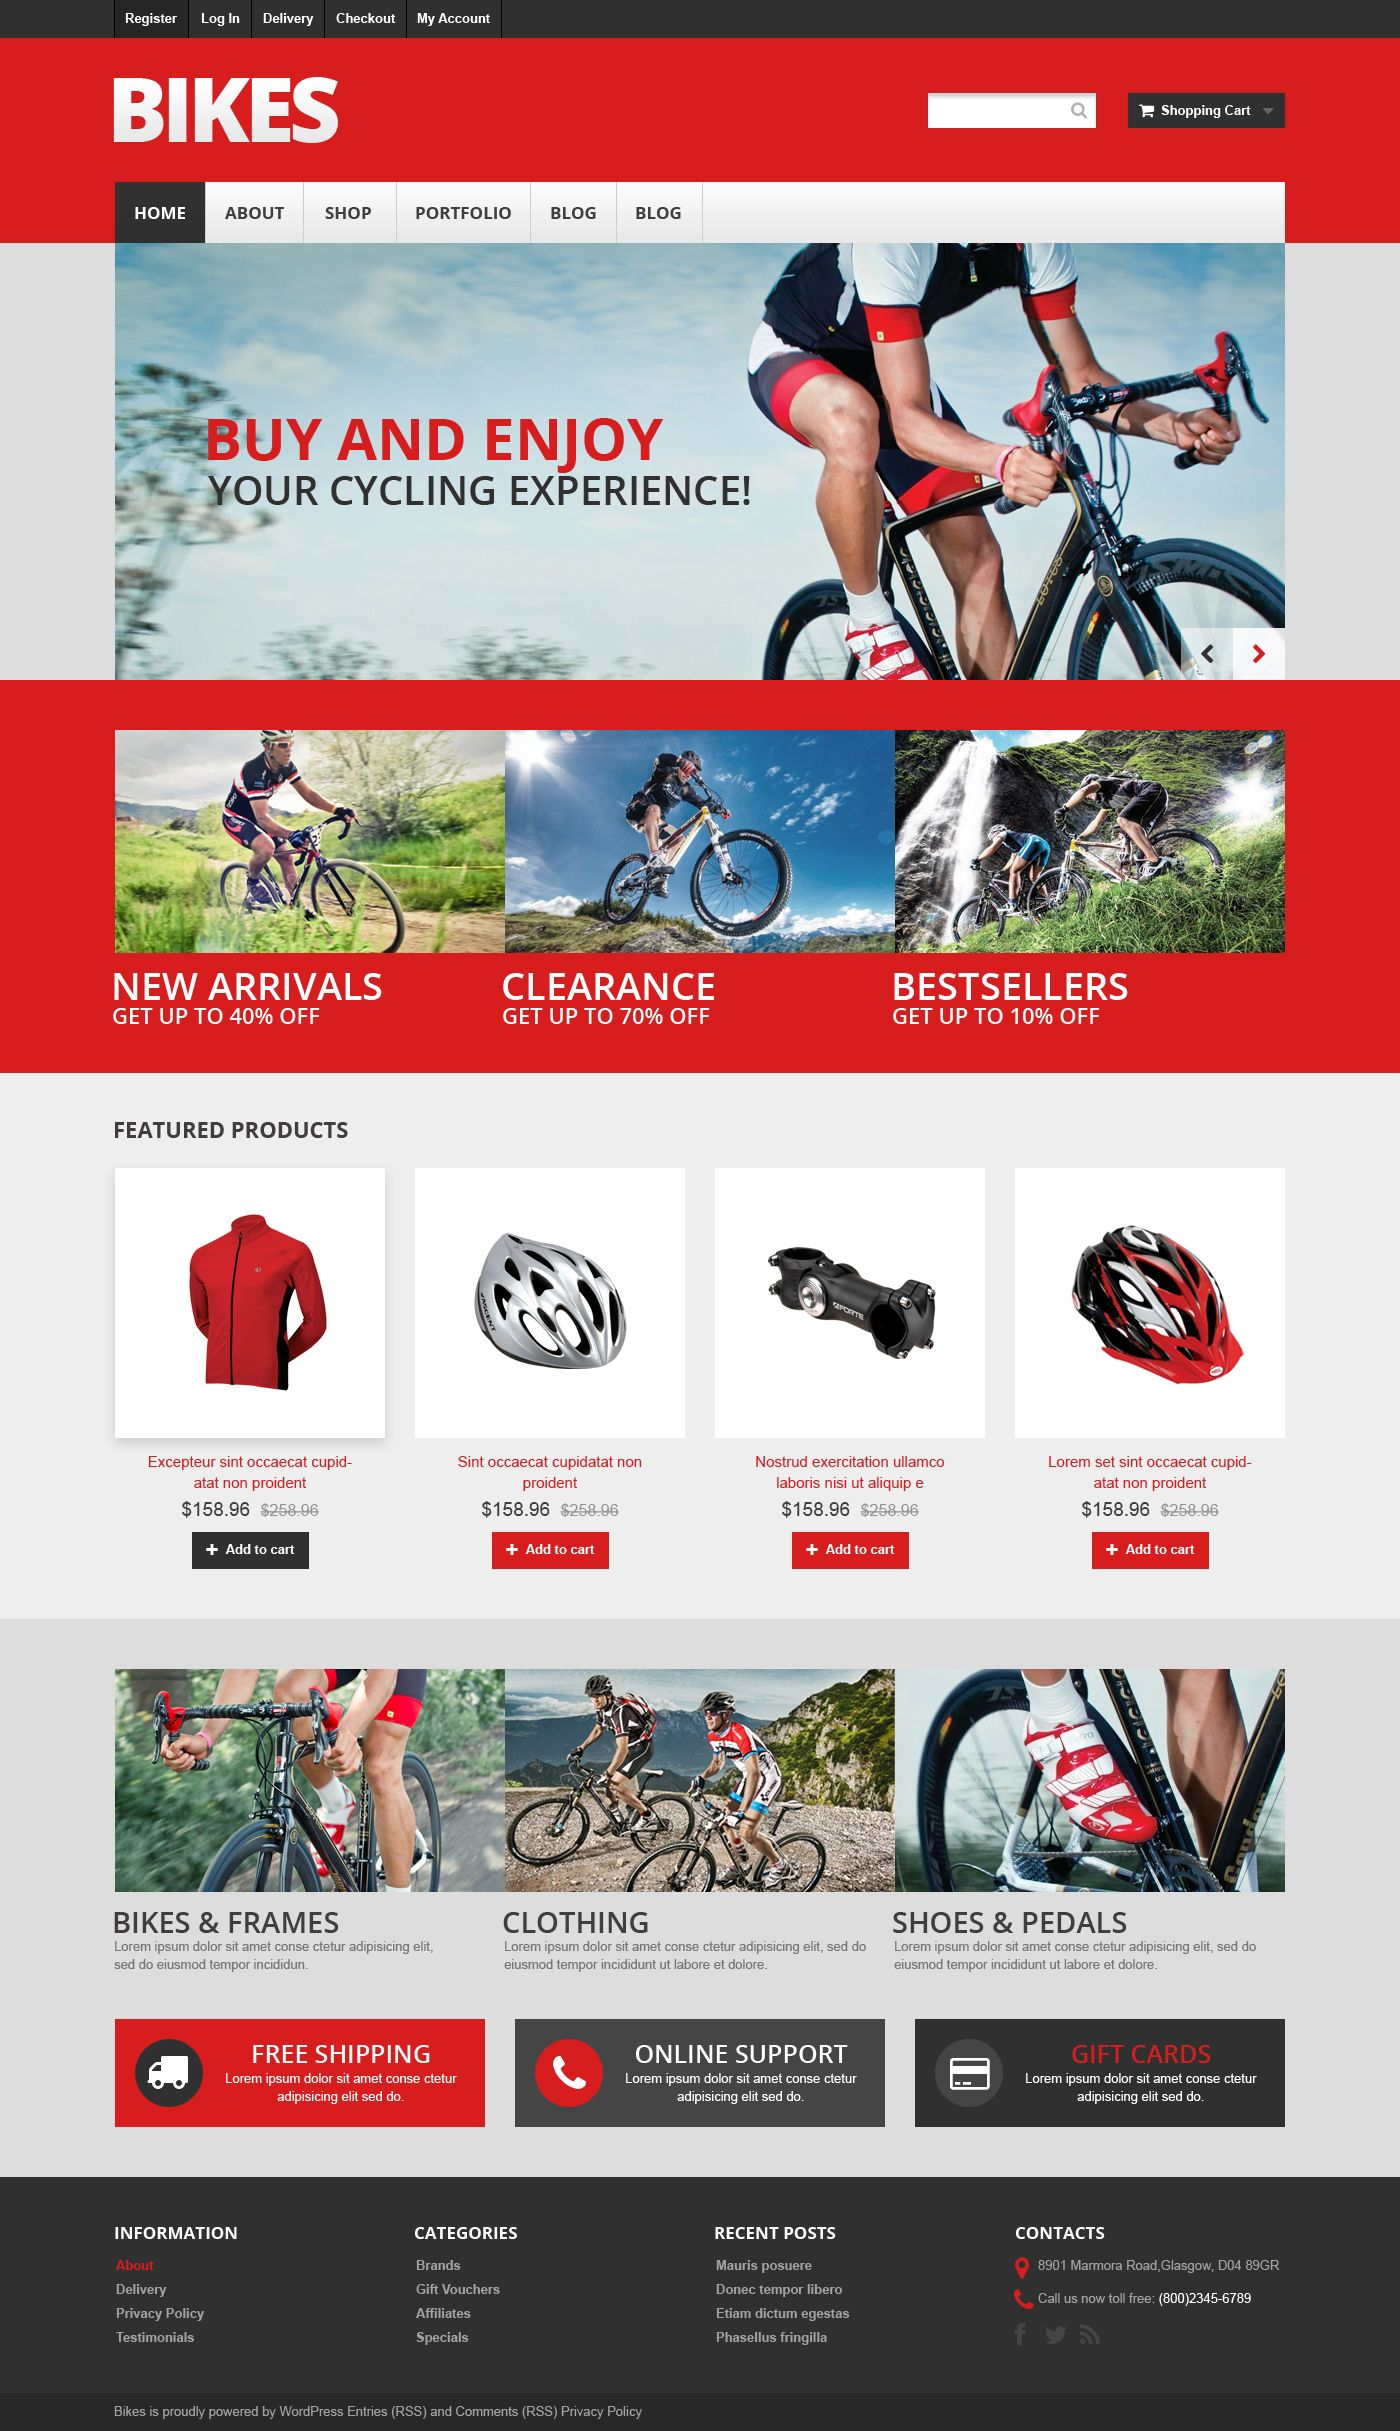 If You Decided To Your Bikes Online We Advise Have A Look At This Images Of People Riding Their Over The Picturesque Landscapes